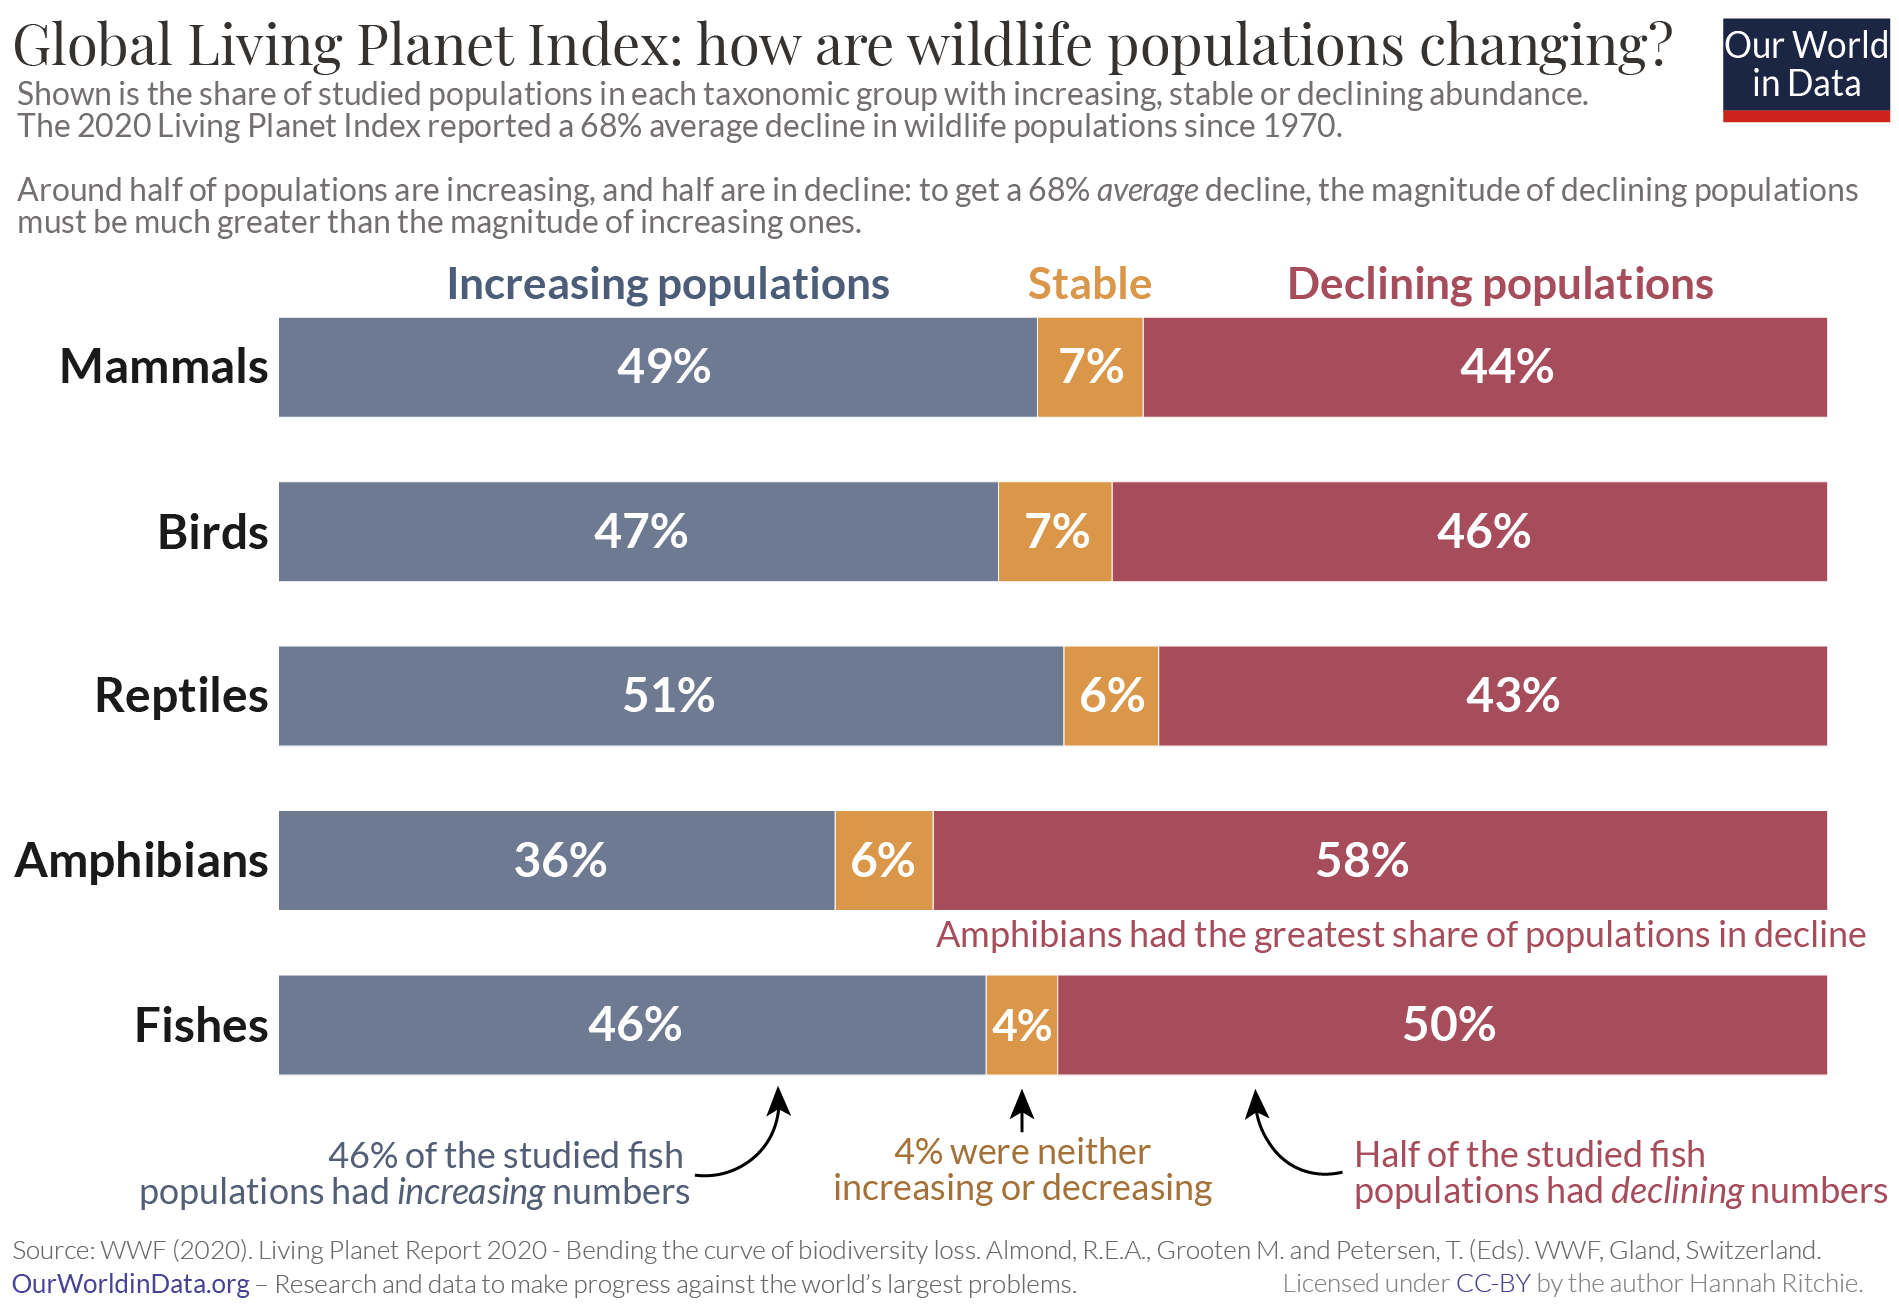 Share of populations increasing and declining living planet index